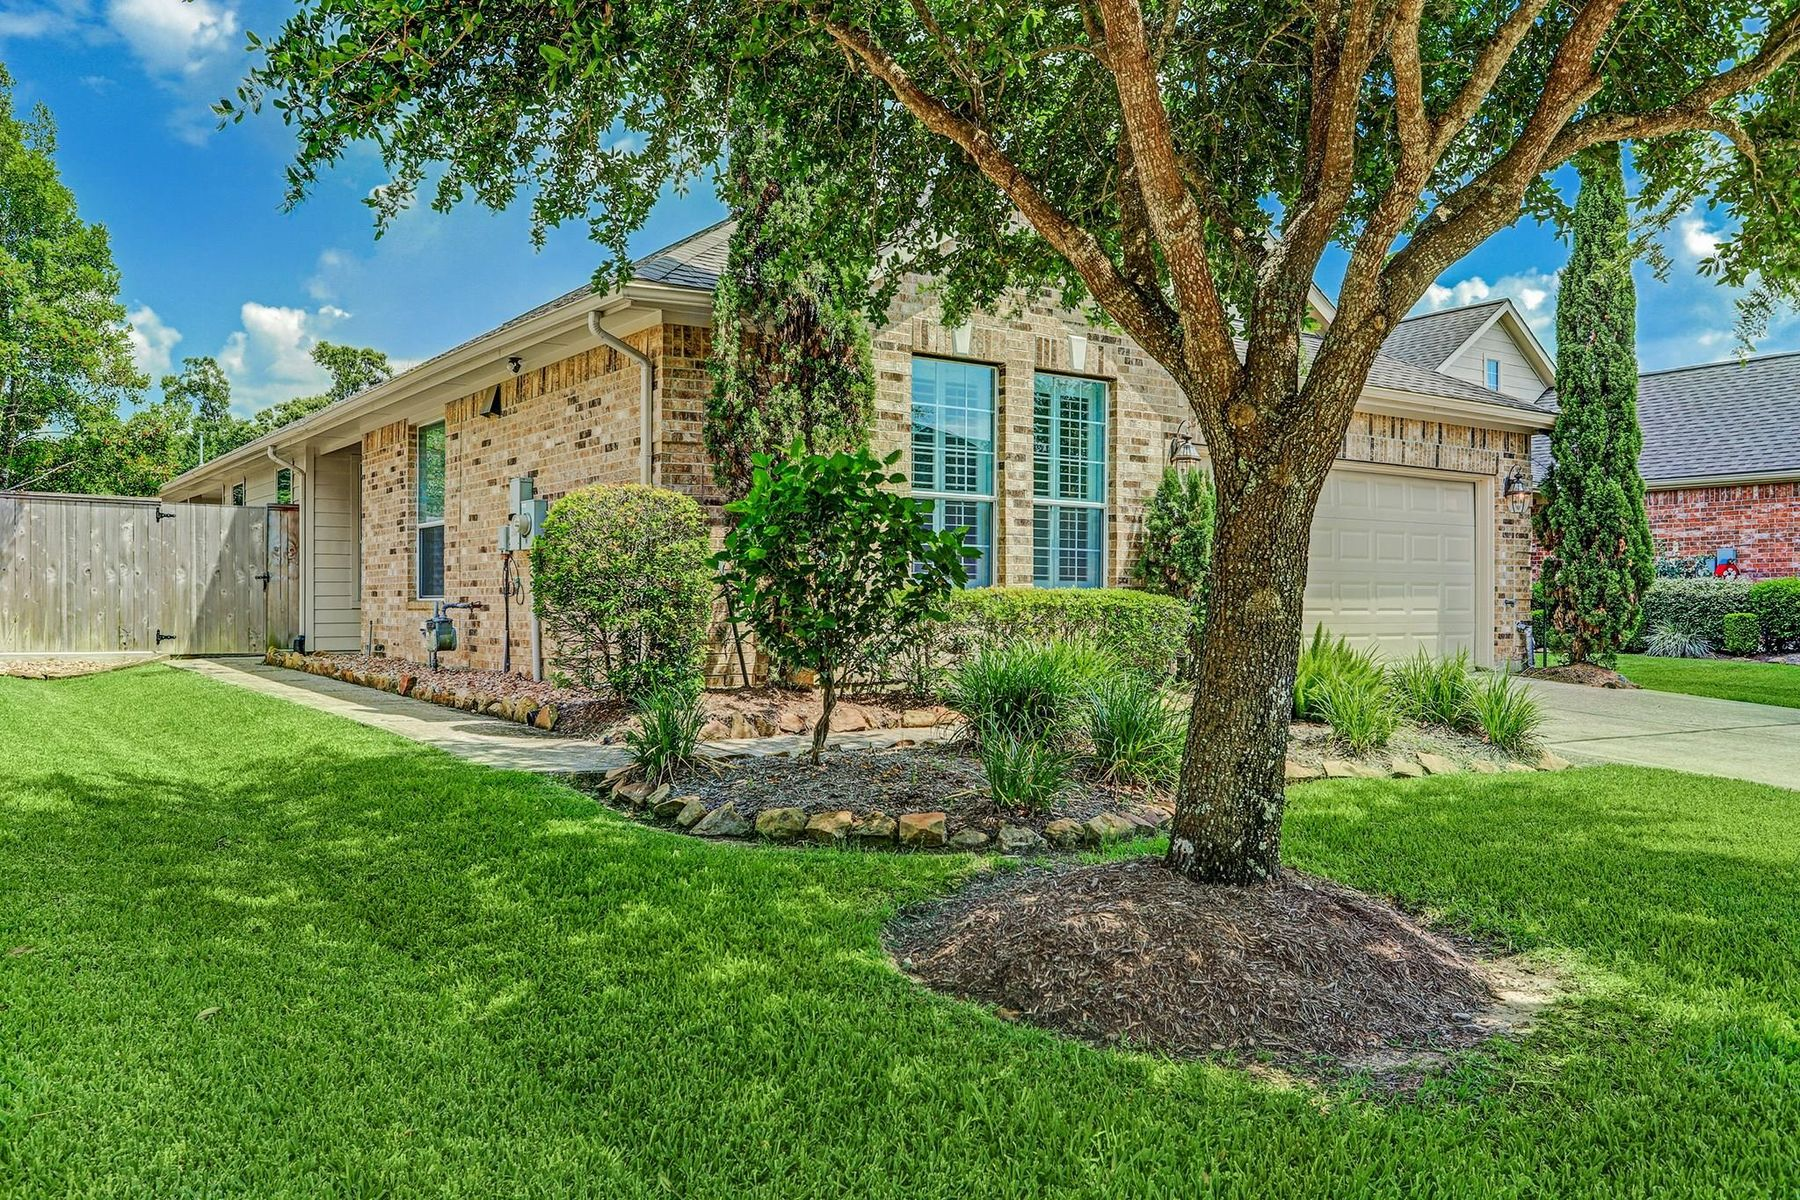 Single Family Homes for Active at 2405 Modena Court Pearland, Texas 77581 United States